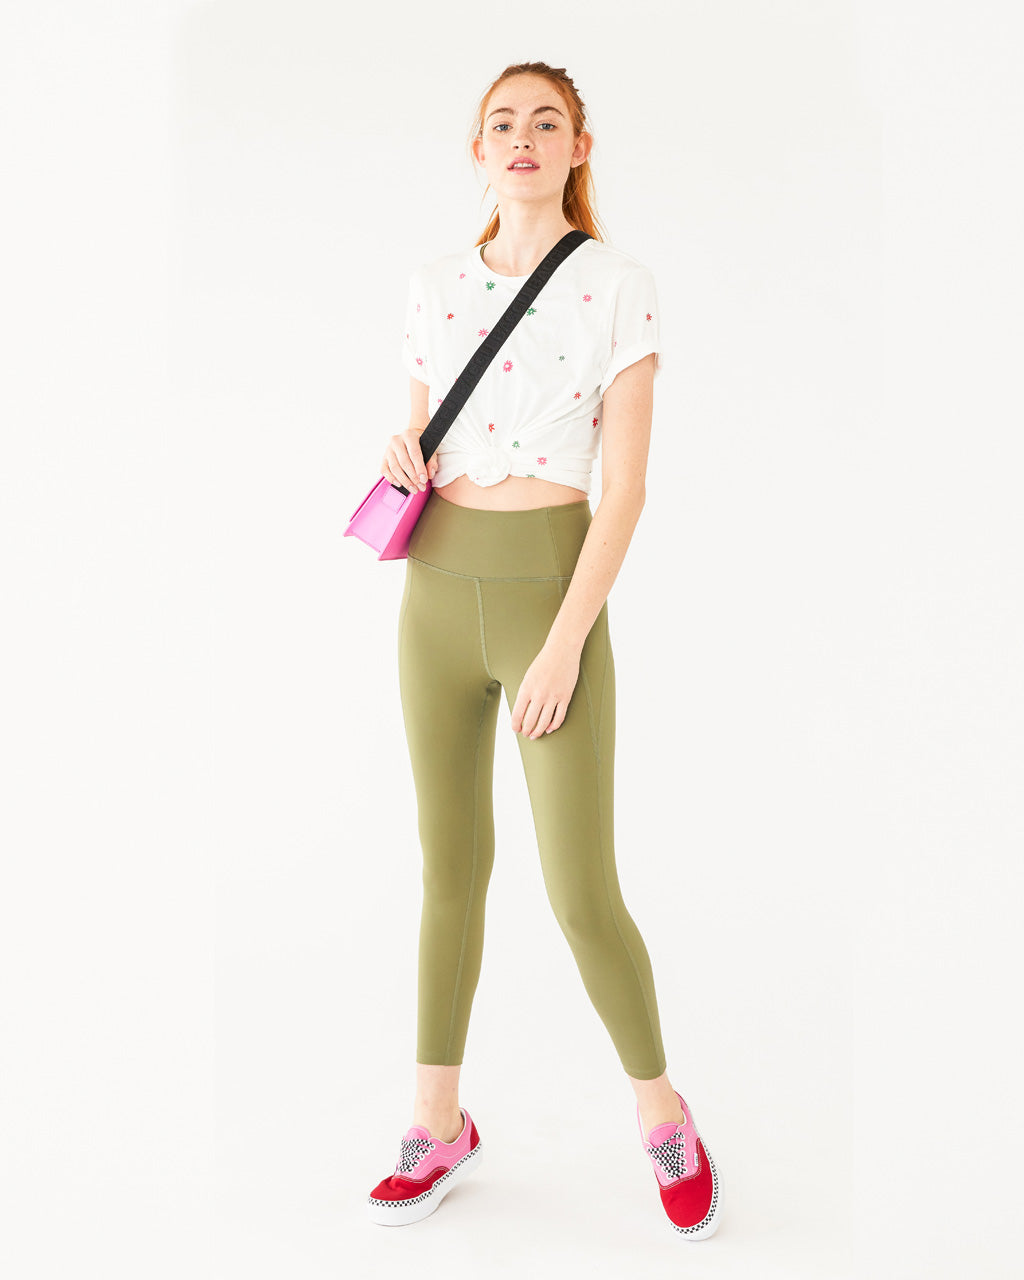 Olive colored compression leggings paired with a daisy tee and vans